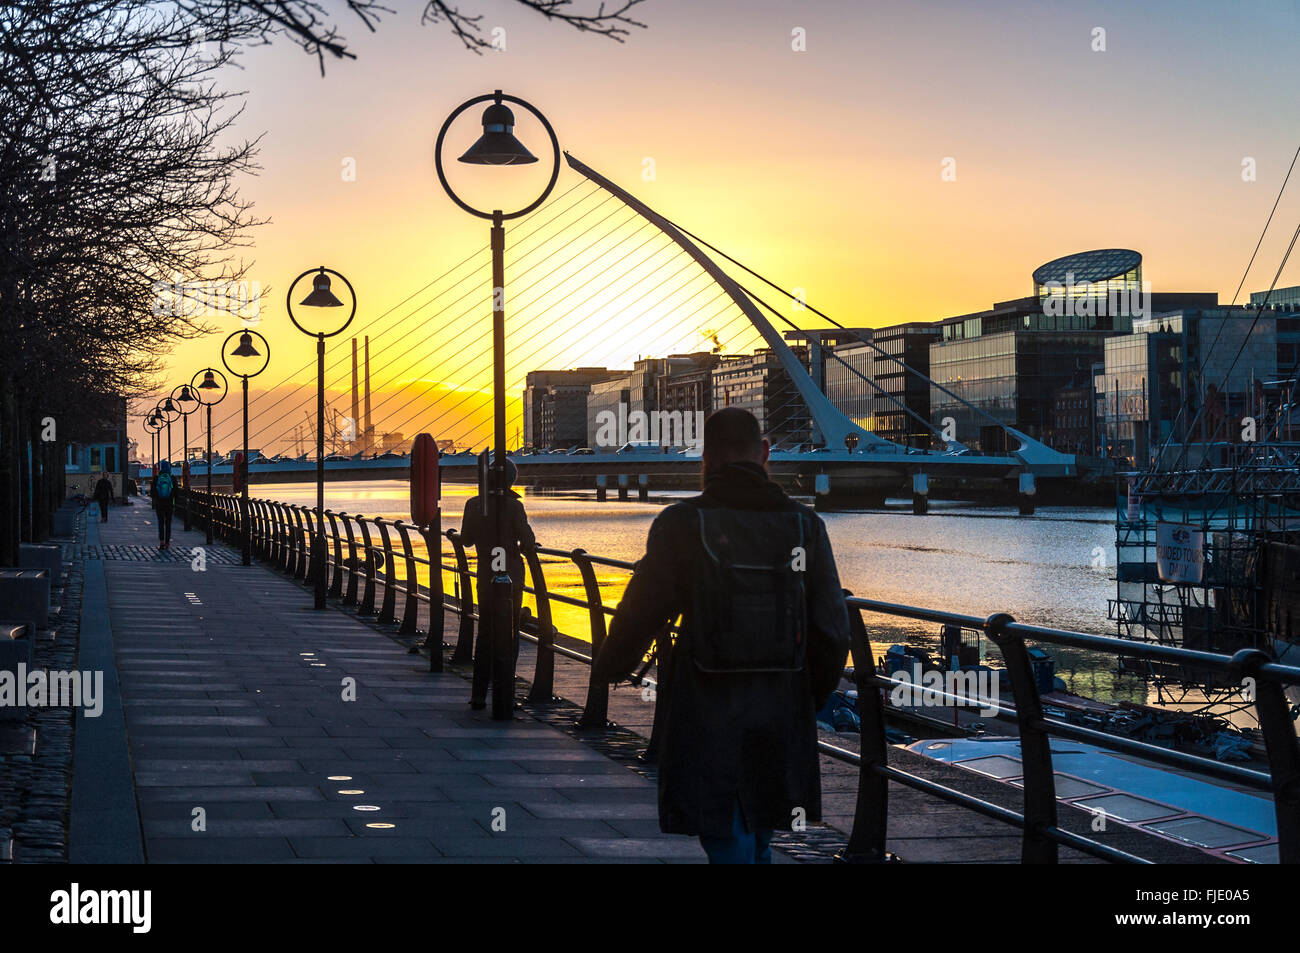 Samuel Beckett Bridge over River Liffey, Docklands area at dawn, Dublin, Ireland Stock Photo